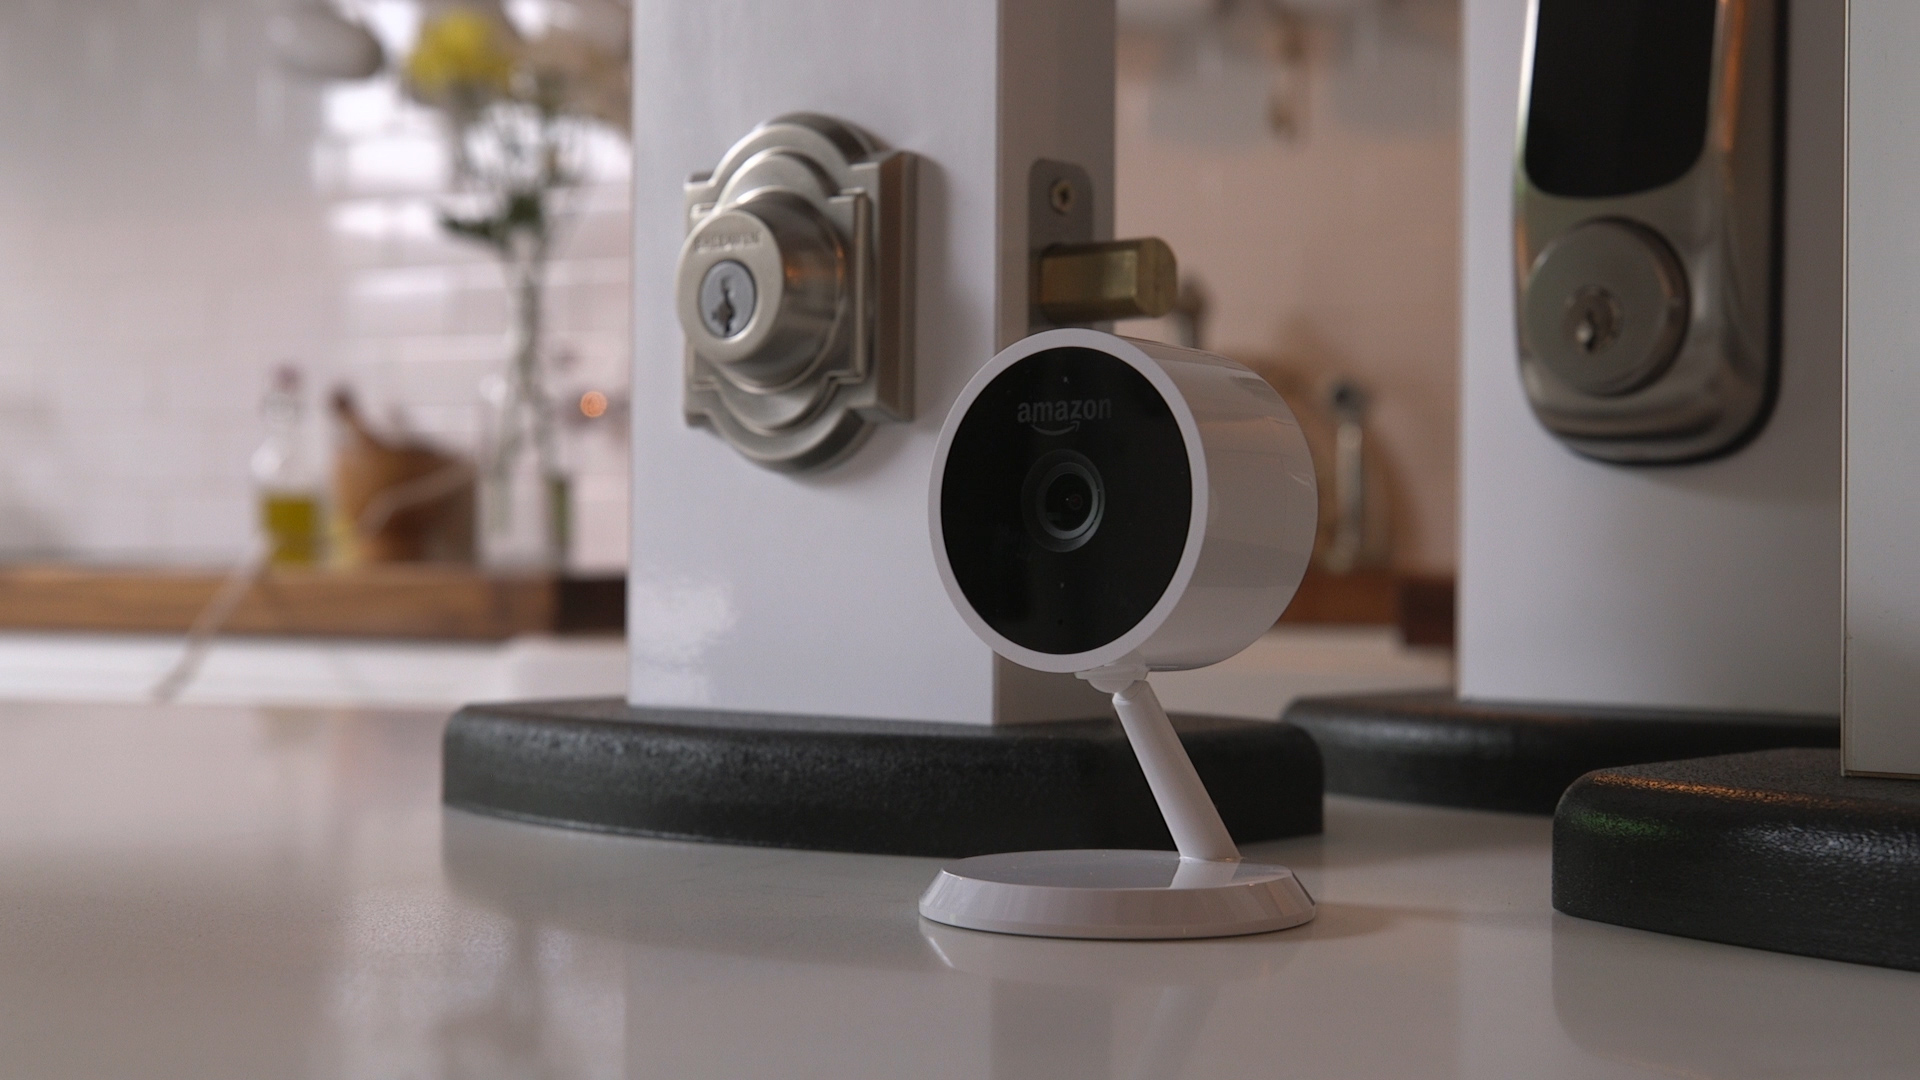 Amazon's New Smart Lock Lets Amazon Delivery People Into Your House